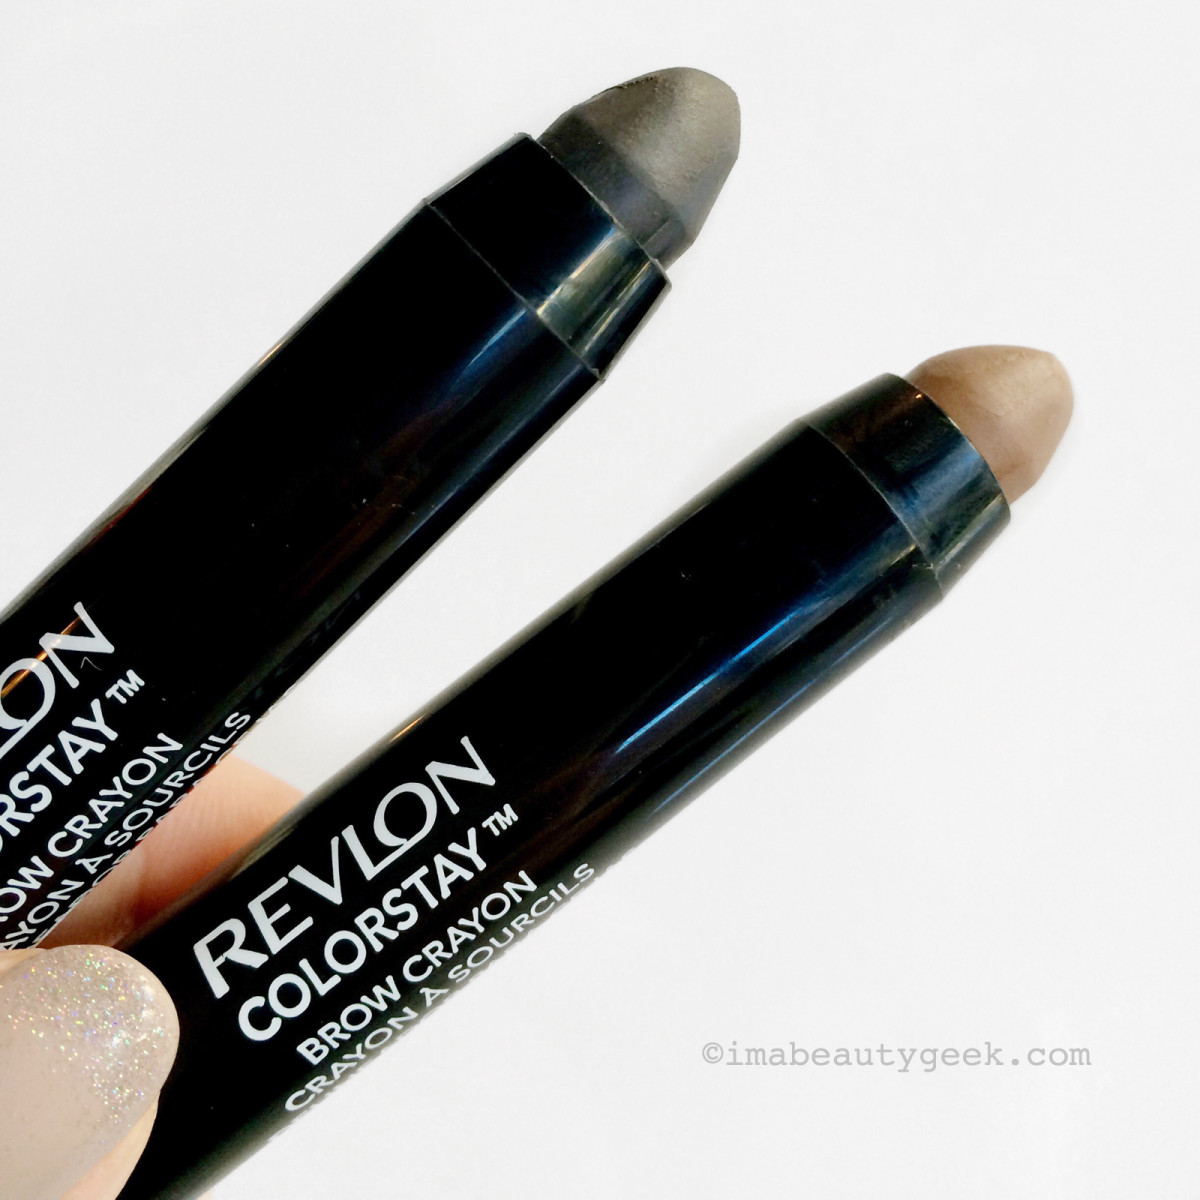 New Revlon Colorstay Brow Pencils And Crayons Include Soft Black Beautygeeks